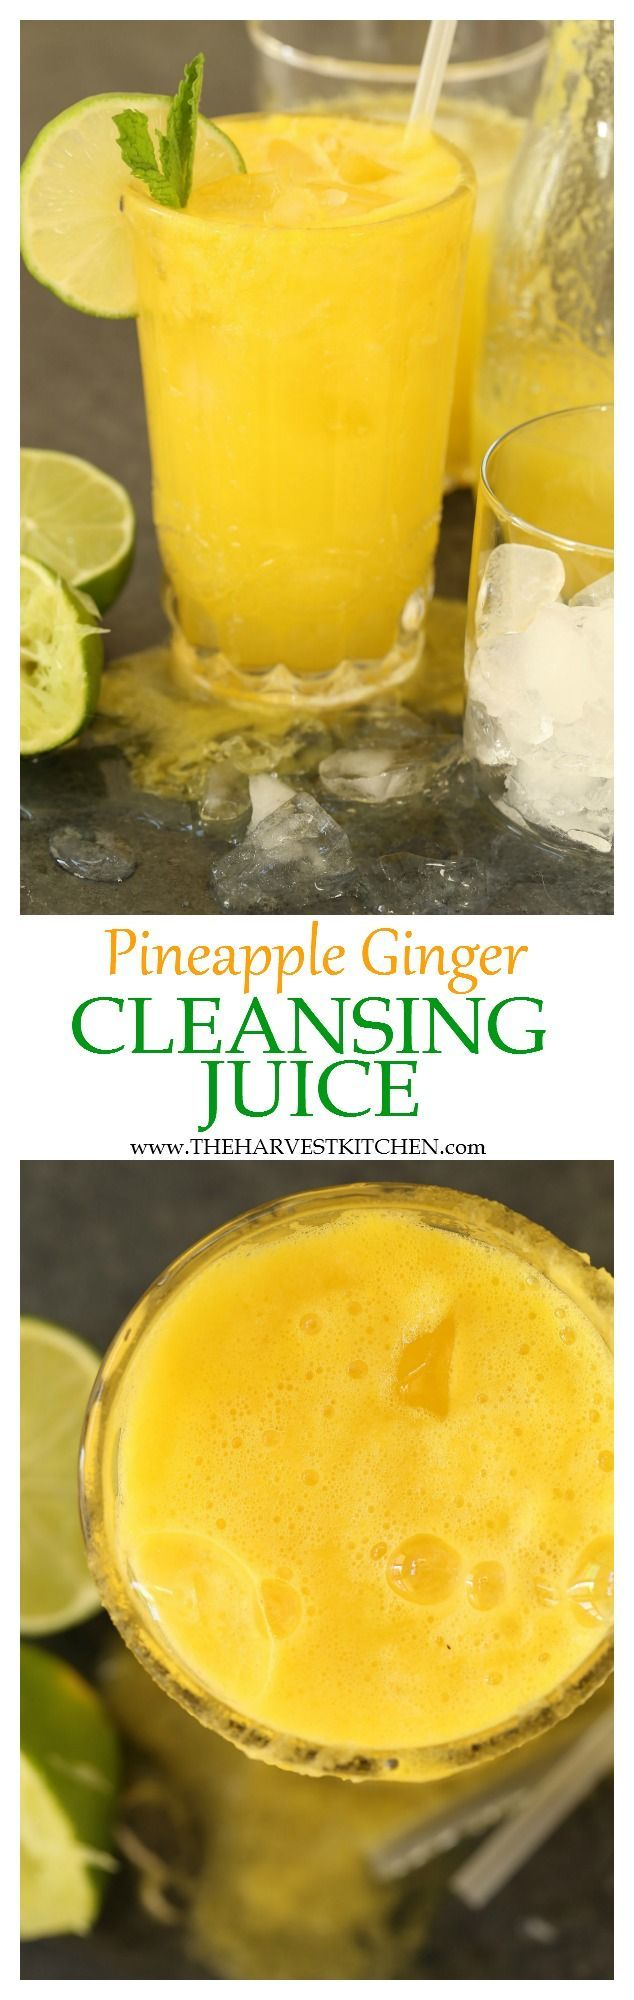 This Pineapple Ginger Cleansing Juice is rich in antioxidants and helps to aid digestion, and gently cleanse and alkalize the body. | detox drink | | liver cleanse | | pineapple ginger detox drink | | healthy recipes |